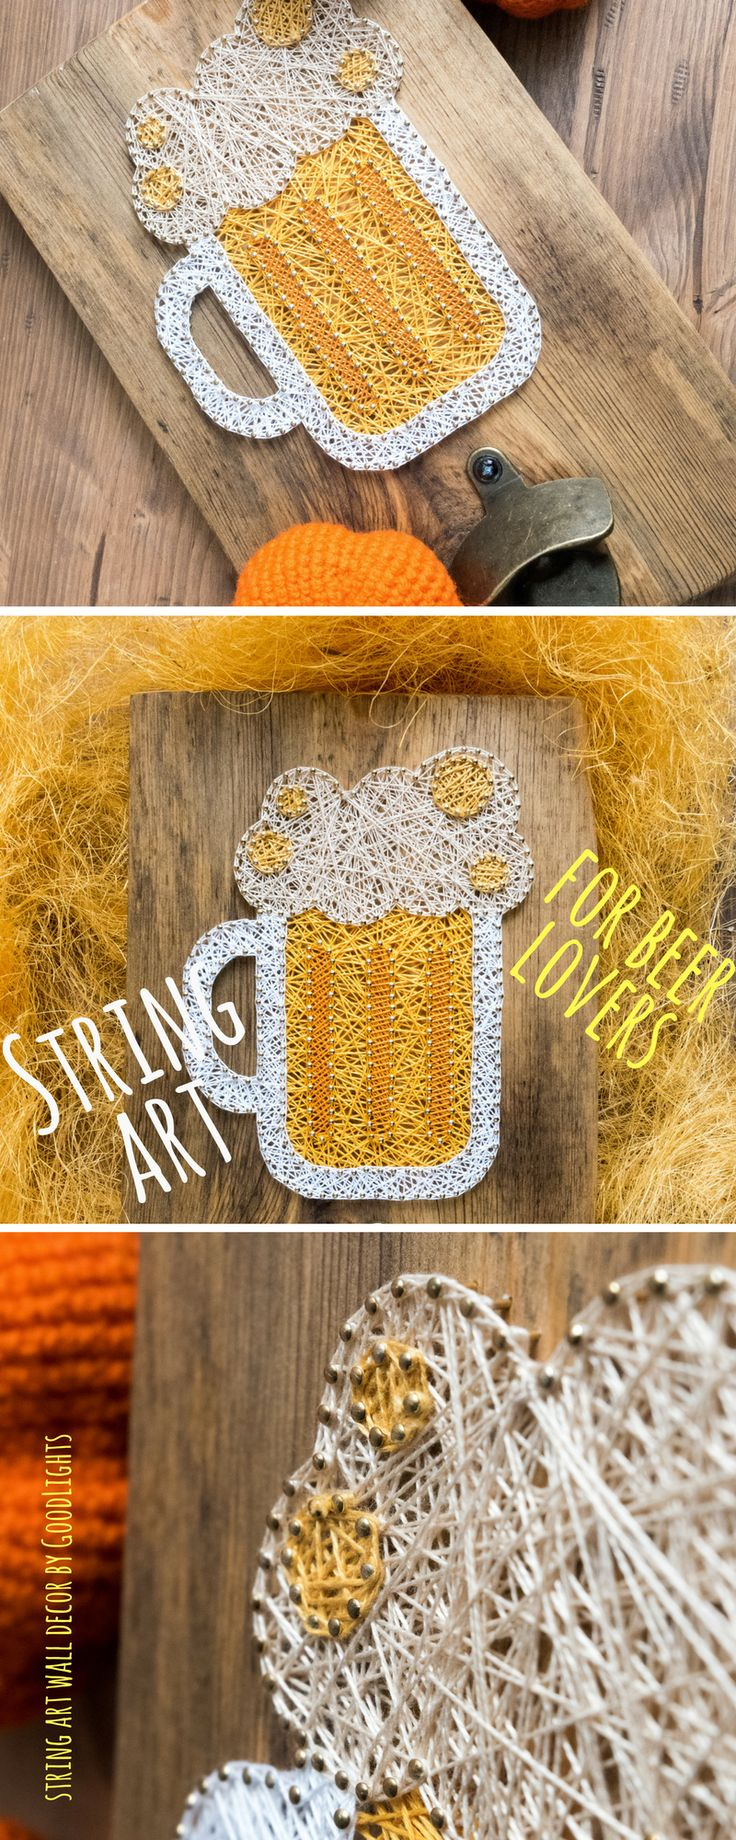 25 unique wall bottle opener ideas on pinterest bottle openers wooden wall mount beer bottle opener made on reclaimed wood plank with beer mug string art decor perfect for beer lover man cave decor wooden wall mount amipublicfo Image collections